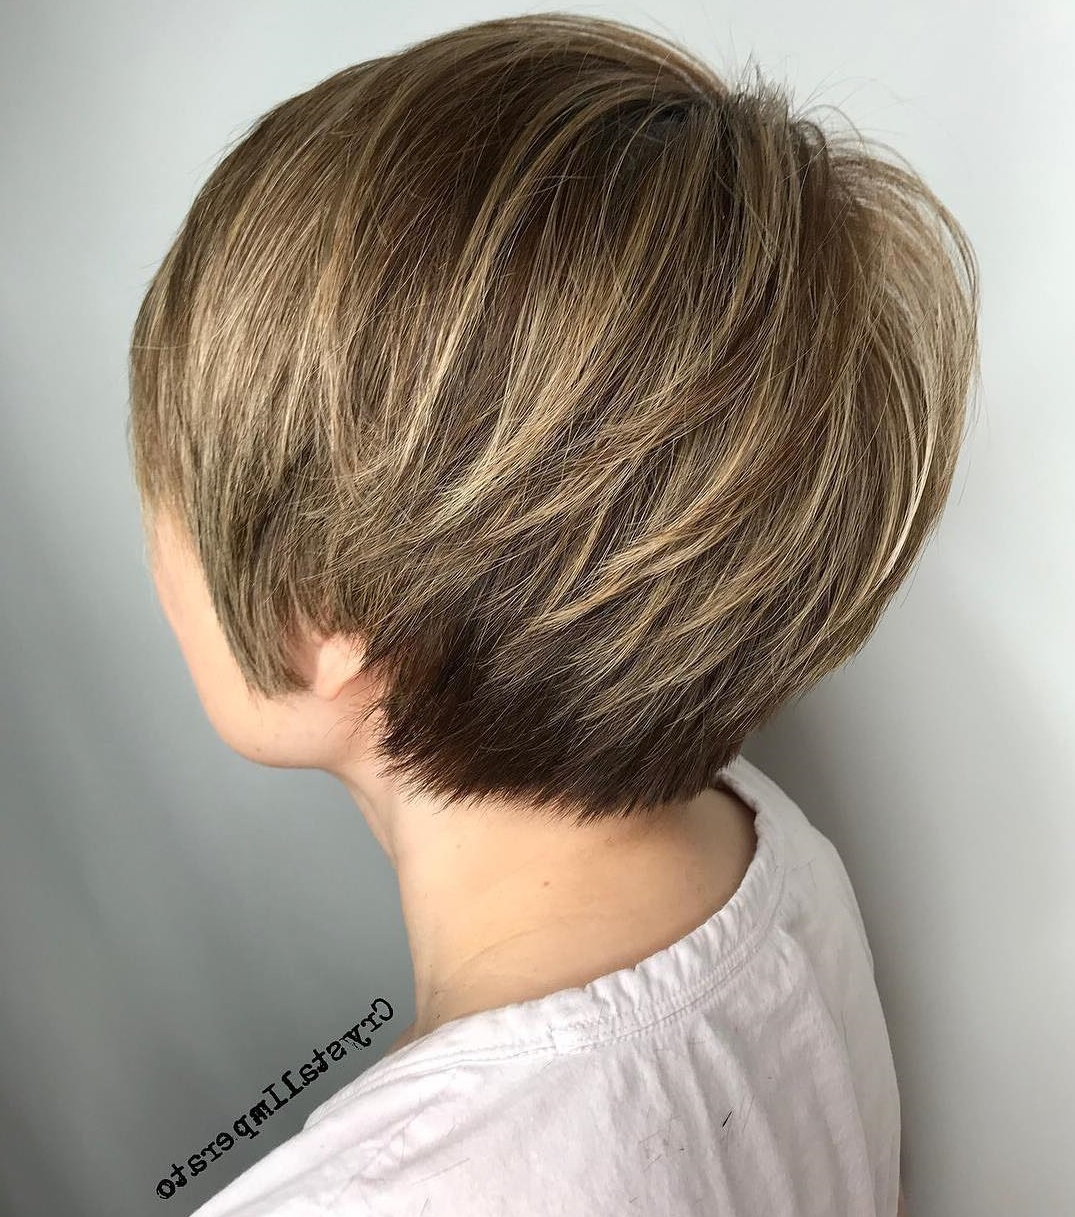 50 Hottest Pixie Cut Hairstyles In 2019 Regarding 2018 Feathered Pixie Shag Haircuts With Highlights (View 8 of 20)